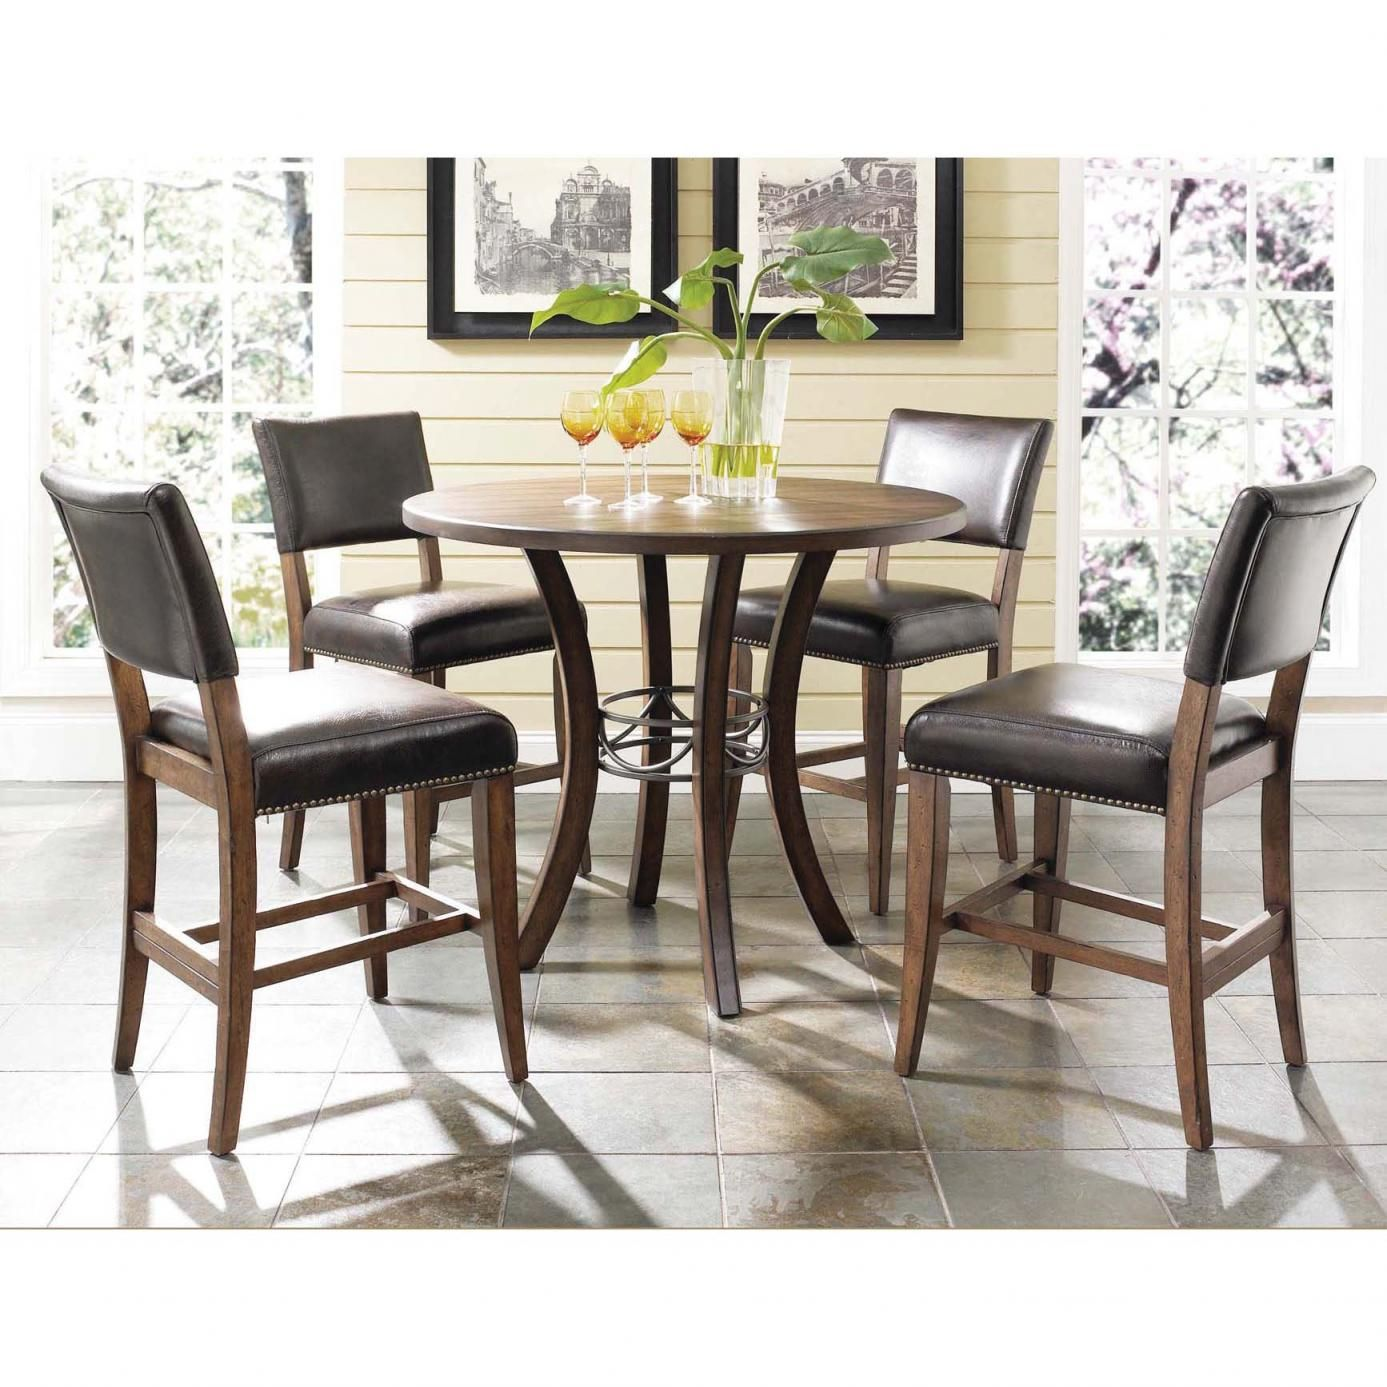 Elegant Hillsdale Furniture Cameron 5 Piece Counter Height Round Wood Dining Set  With Parson Stools